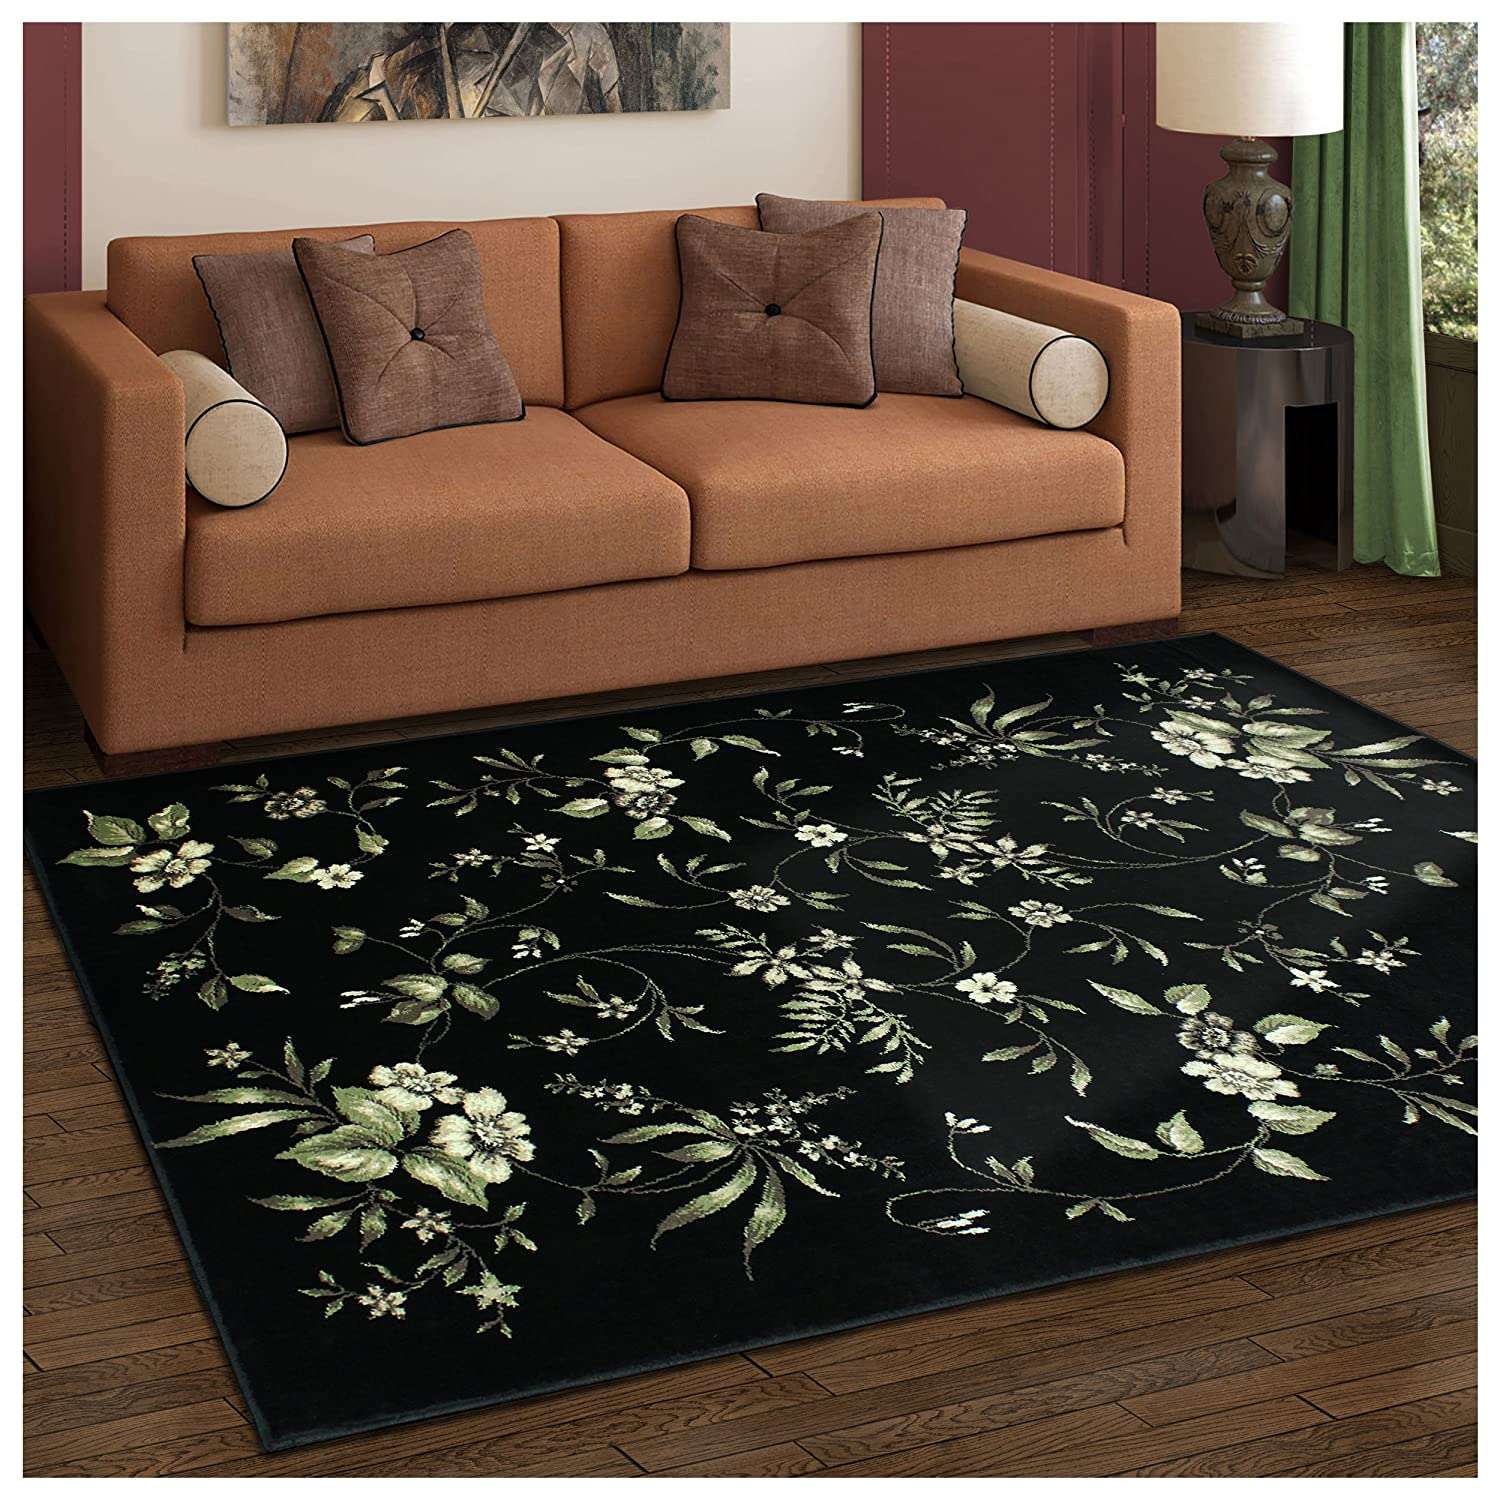 Amazon.com: Superior Bloom Collection Area Rug, 8mm Pile Height with ...